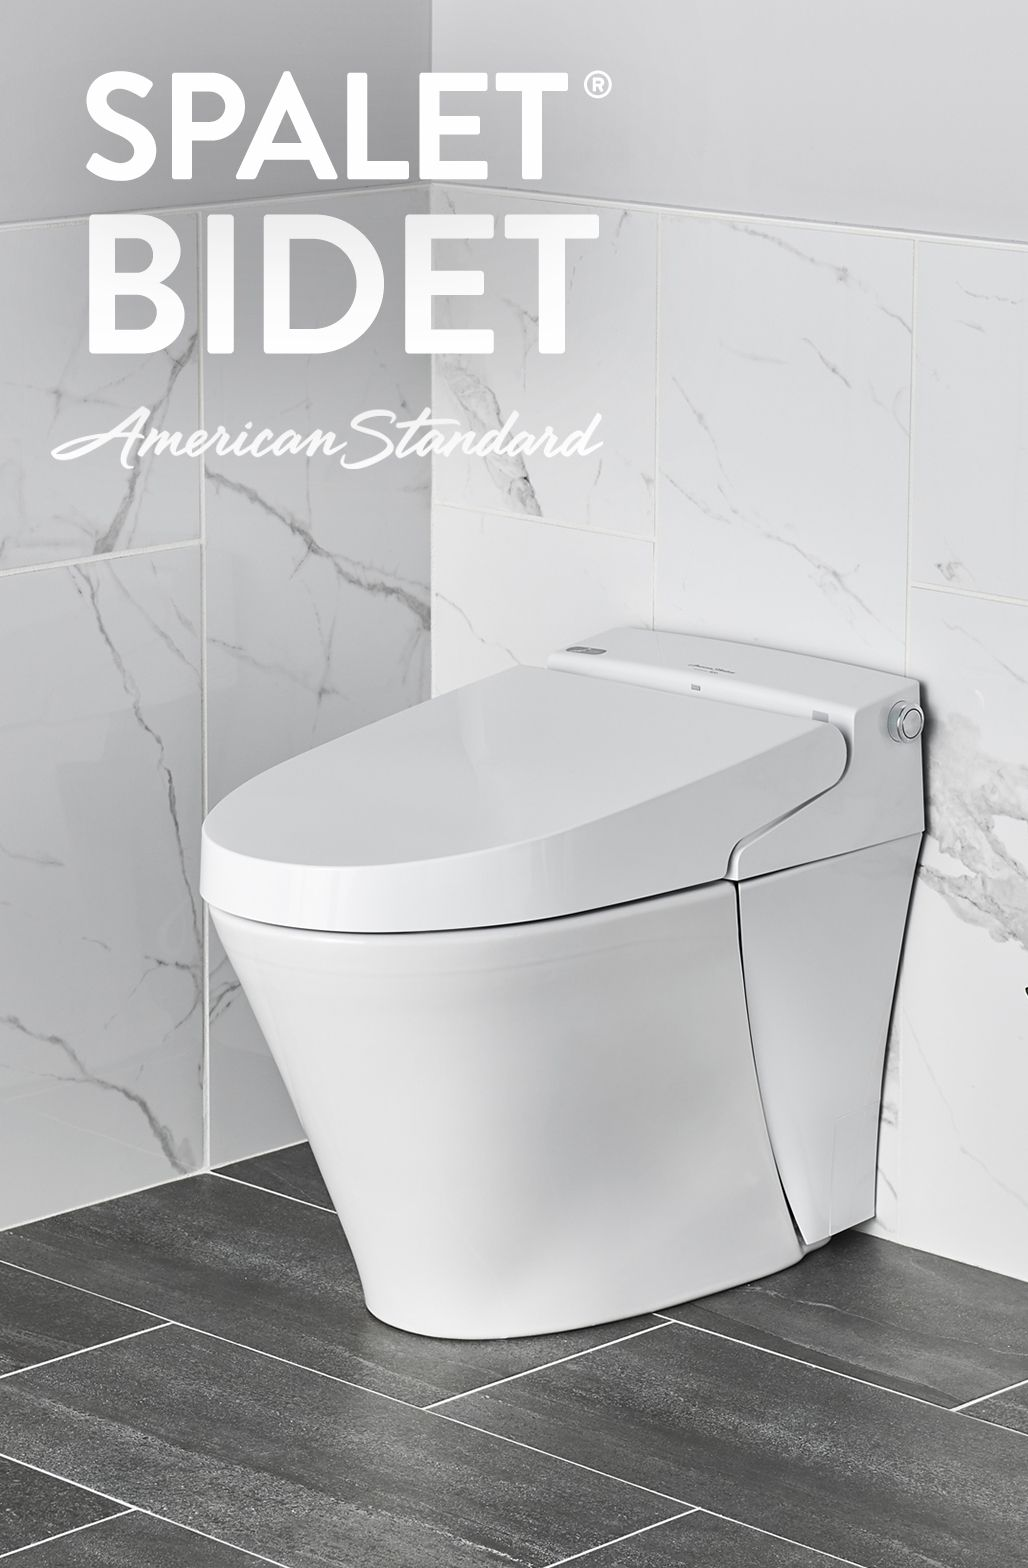 American Standard Spalet Bidets include a heated seat